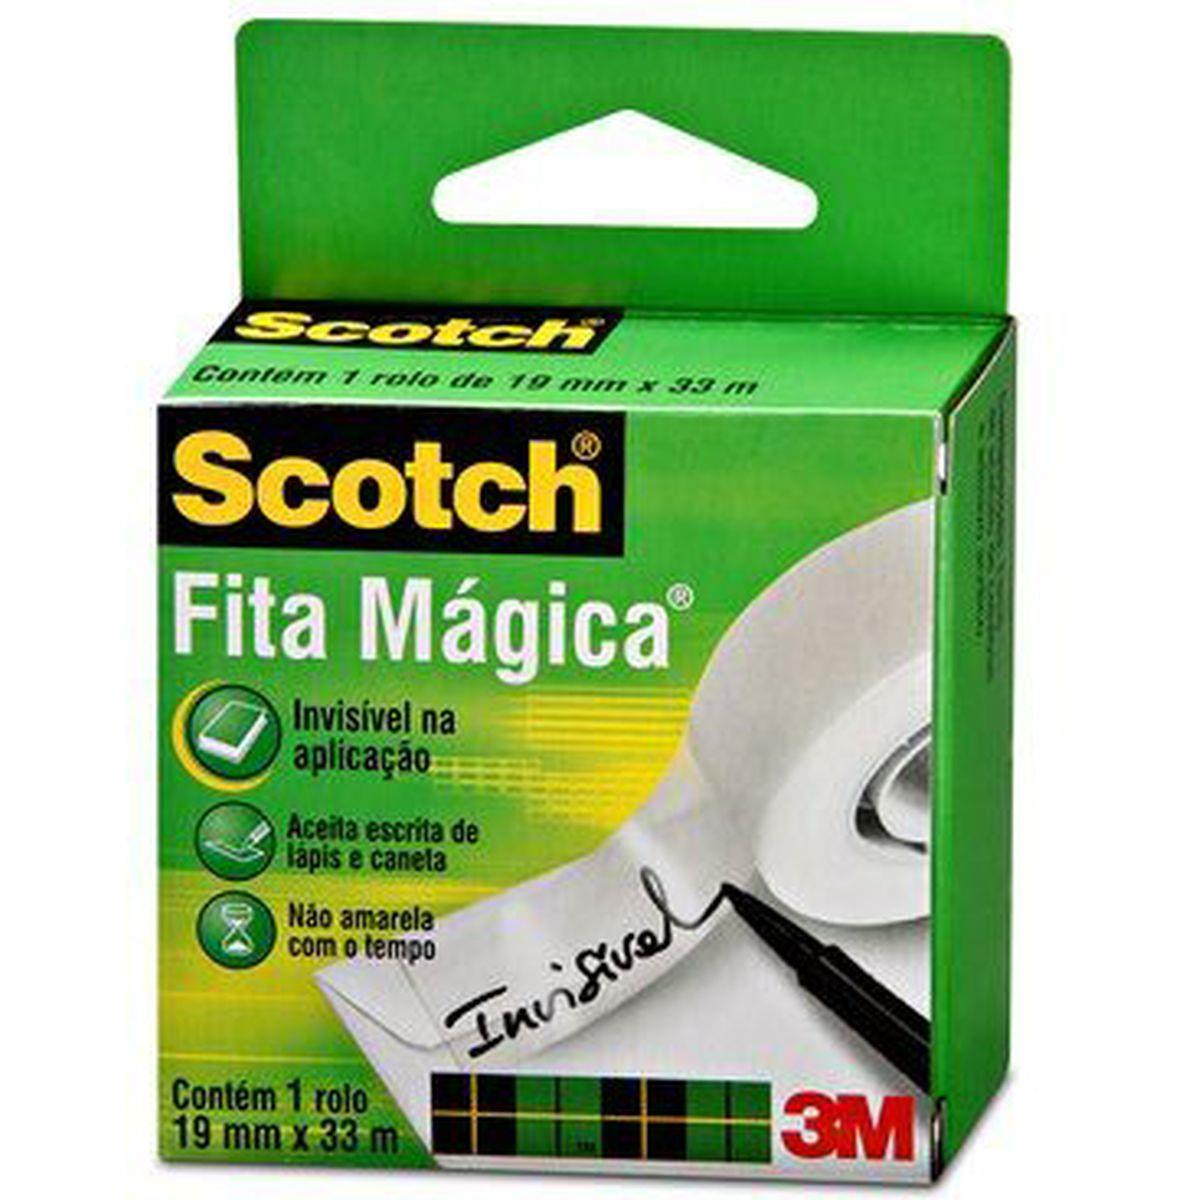 Fita Mágica - Scotch 810 - 19mmx33m - 3M